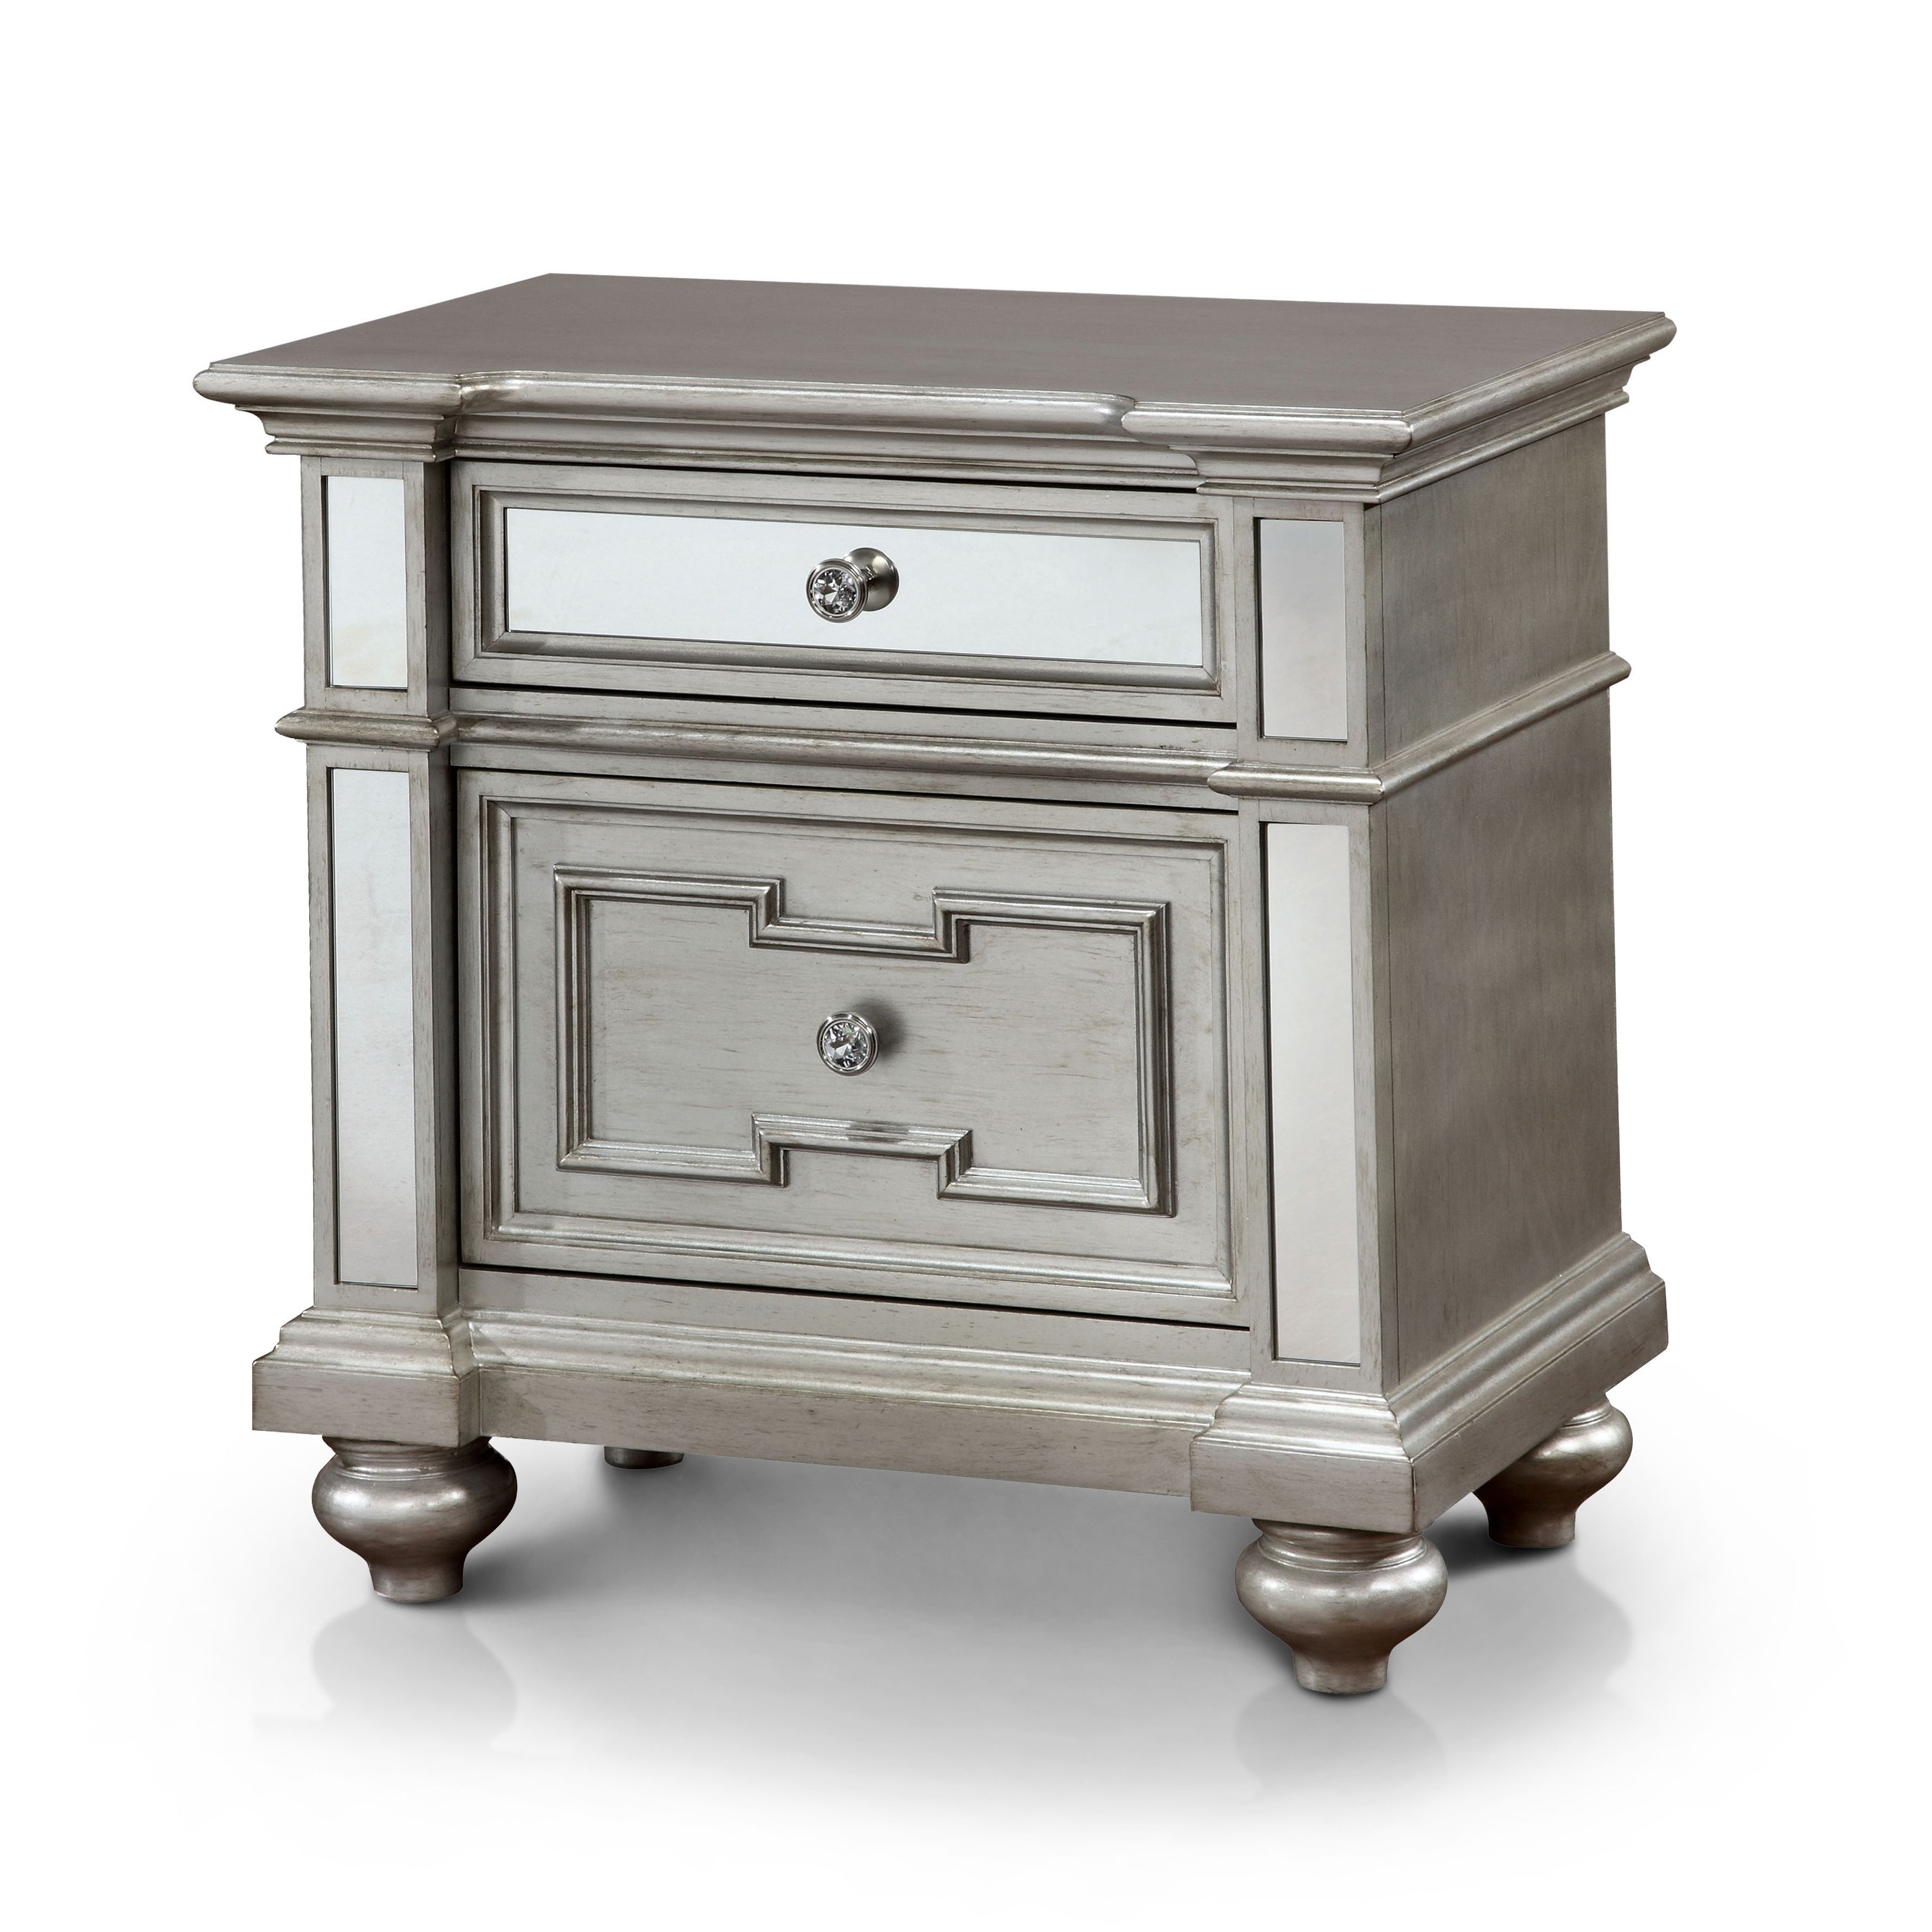 Furniture Of America Eaen Contemporary Champagne Solid Wood Nightstand With Images Furniture Of America Furniture Mirrored Nightstand